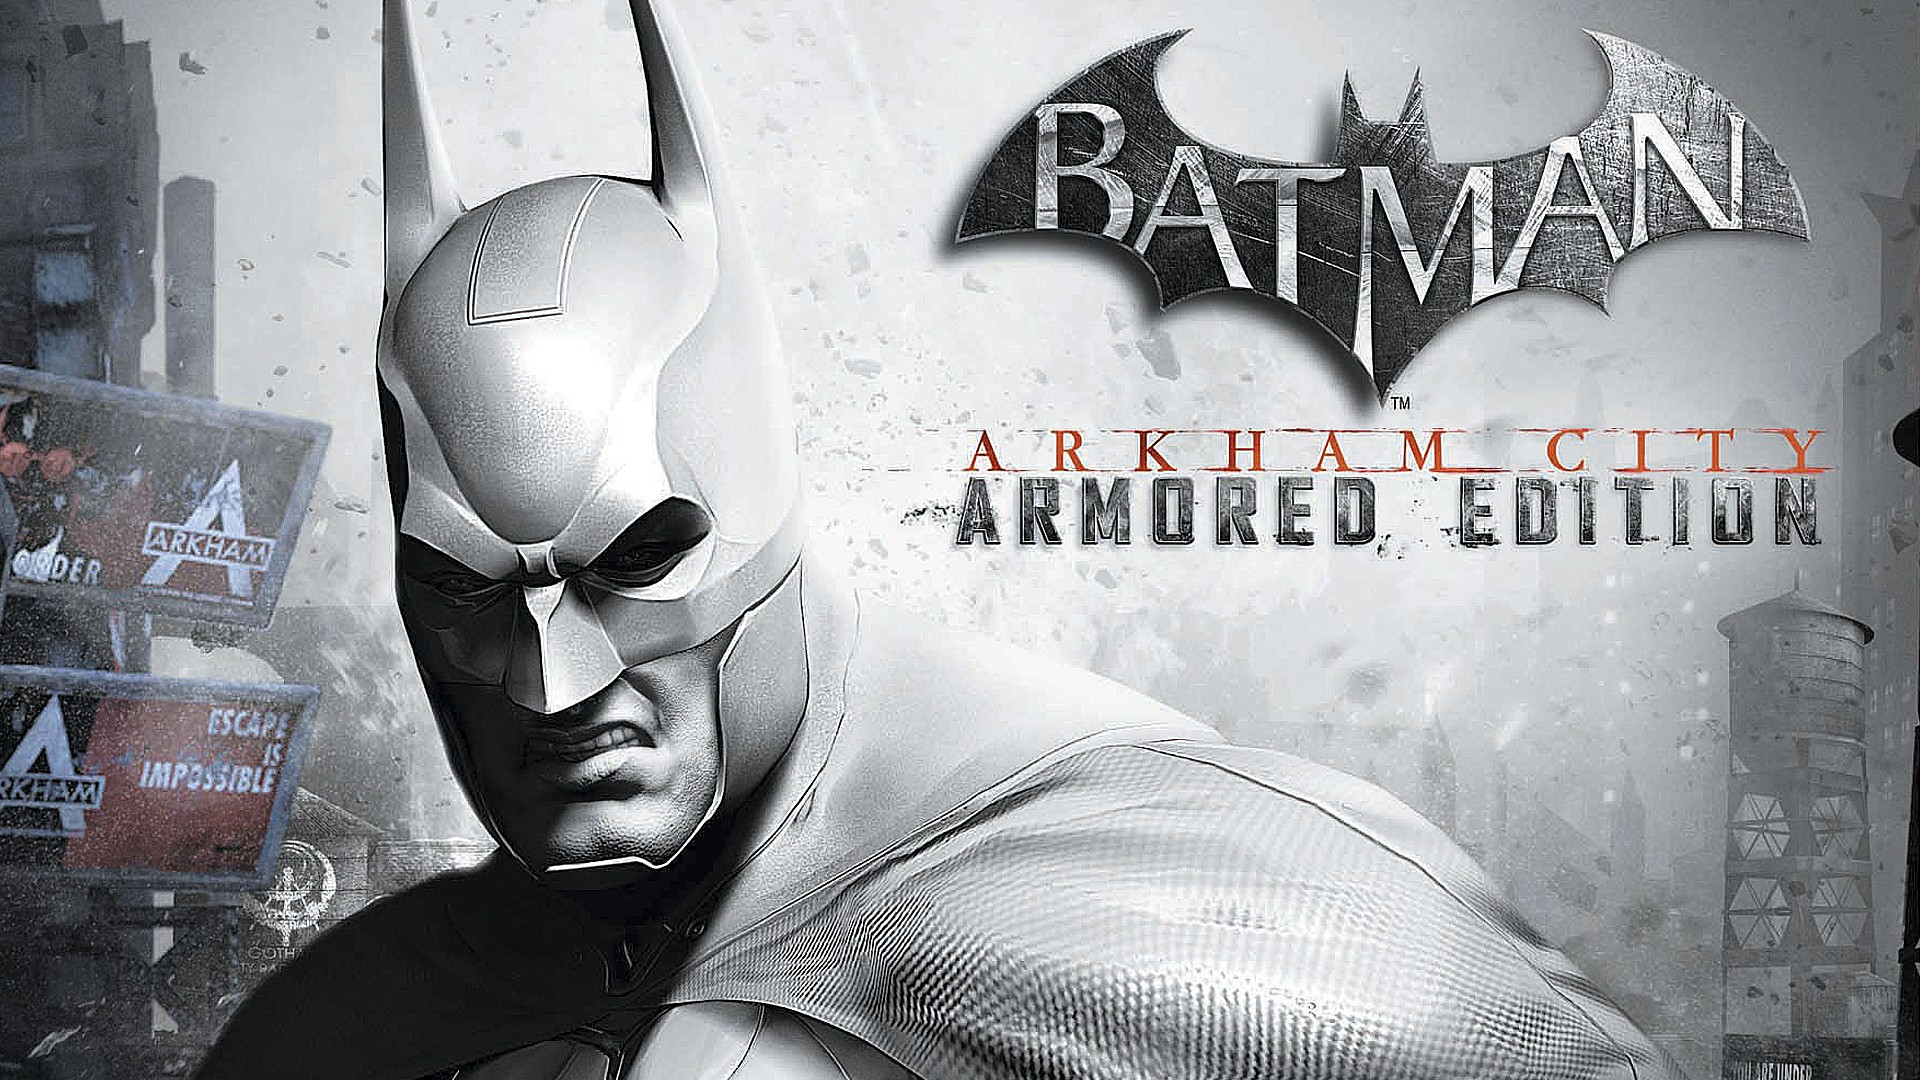 3d Landscape Wallpaper Download Batman Arkham City Armored Edition Wallpapers Hd